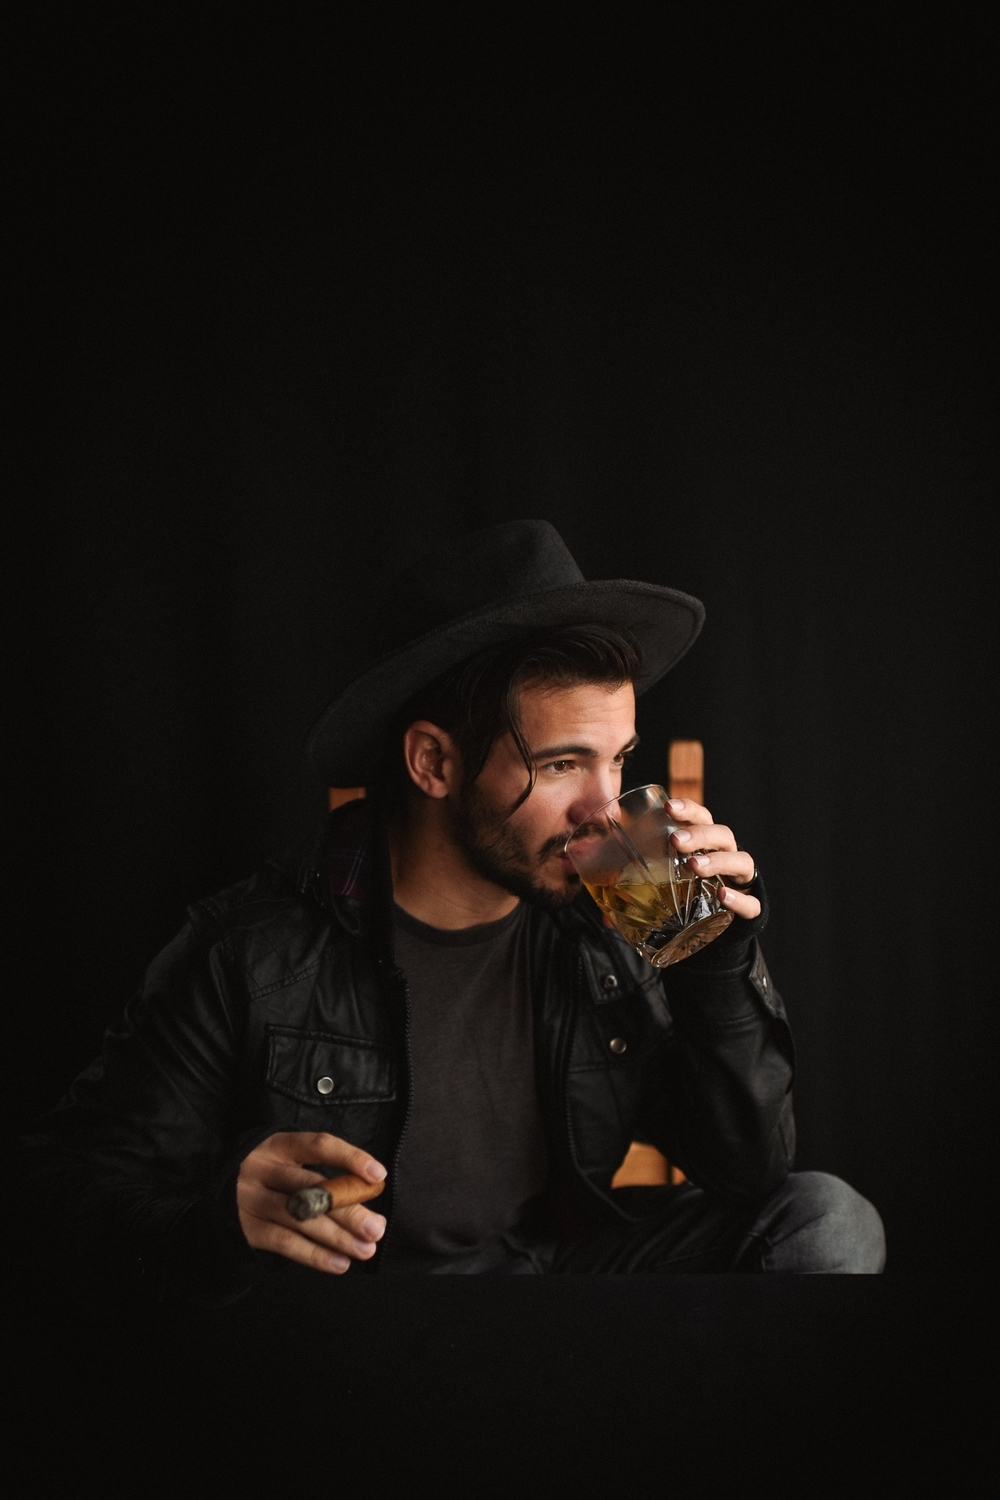 Wind down the evening with a round of cigars, pipes or, um, water. Photo by Chelsea Lane Photography.